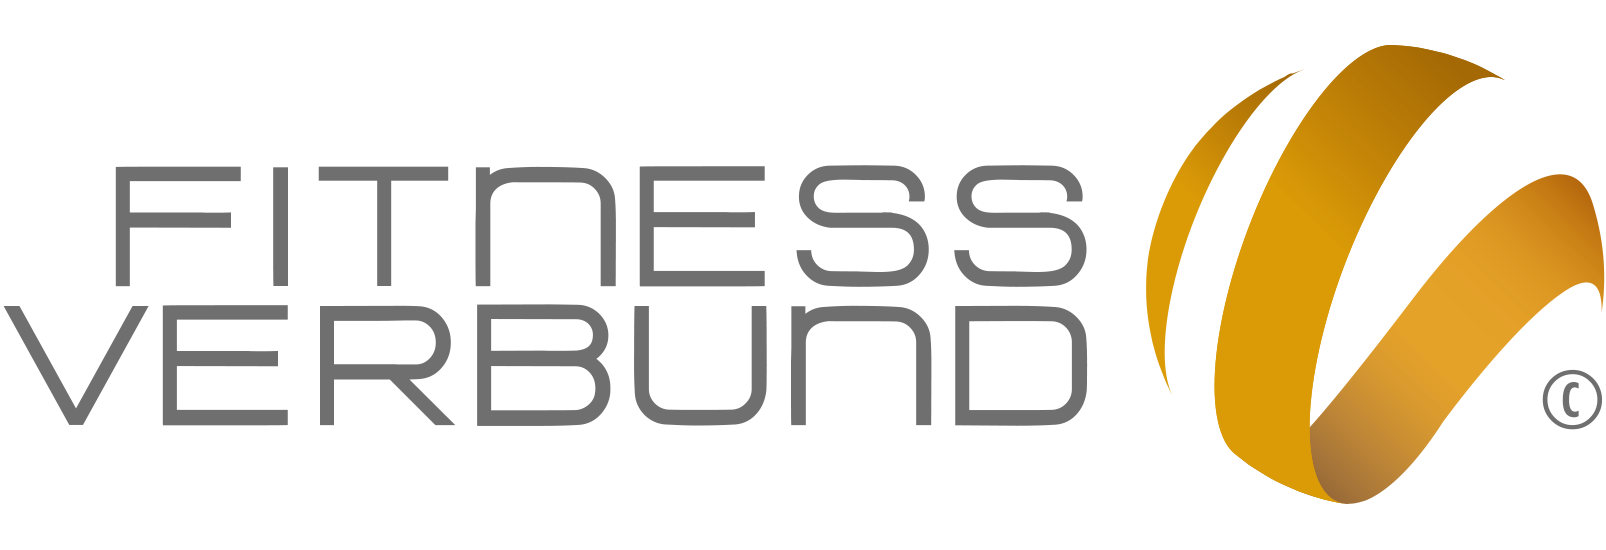 FITTNESSVERBUND STUDIOS | FIT | GESUND